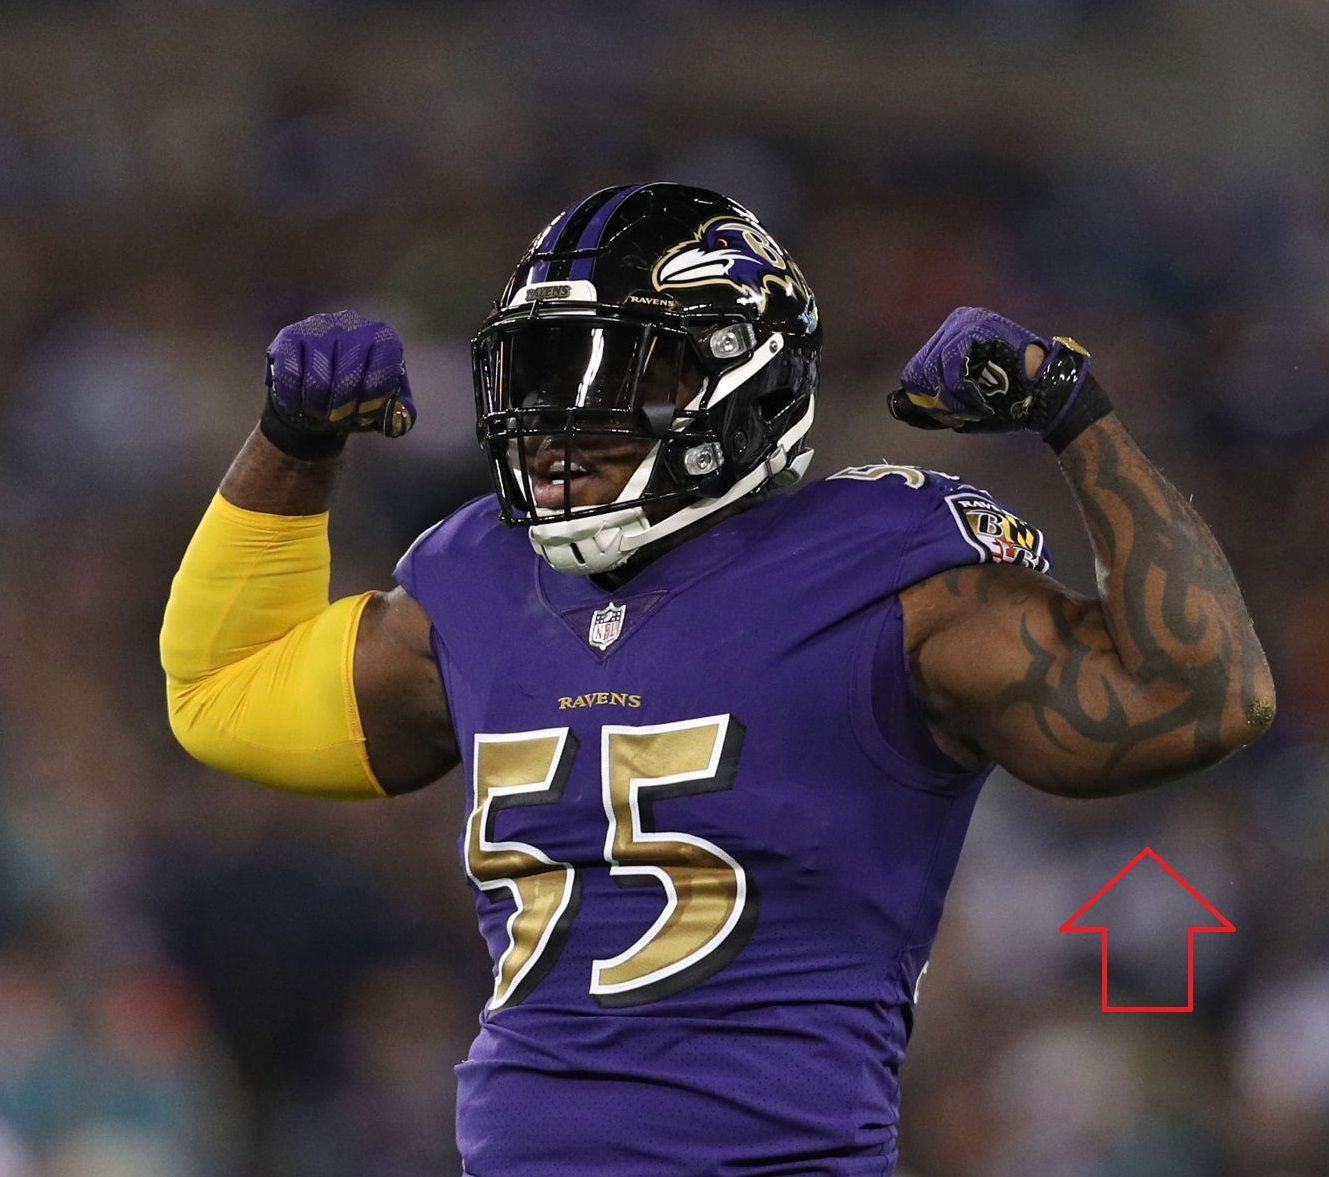 Terrell Suggs Left Arm Tribal Tattoo